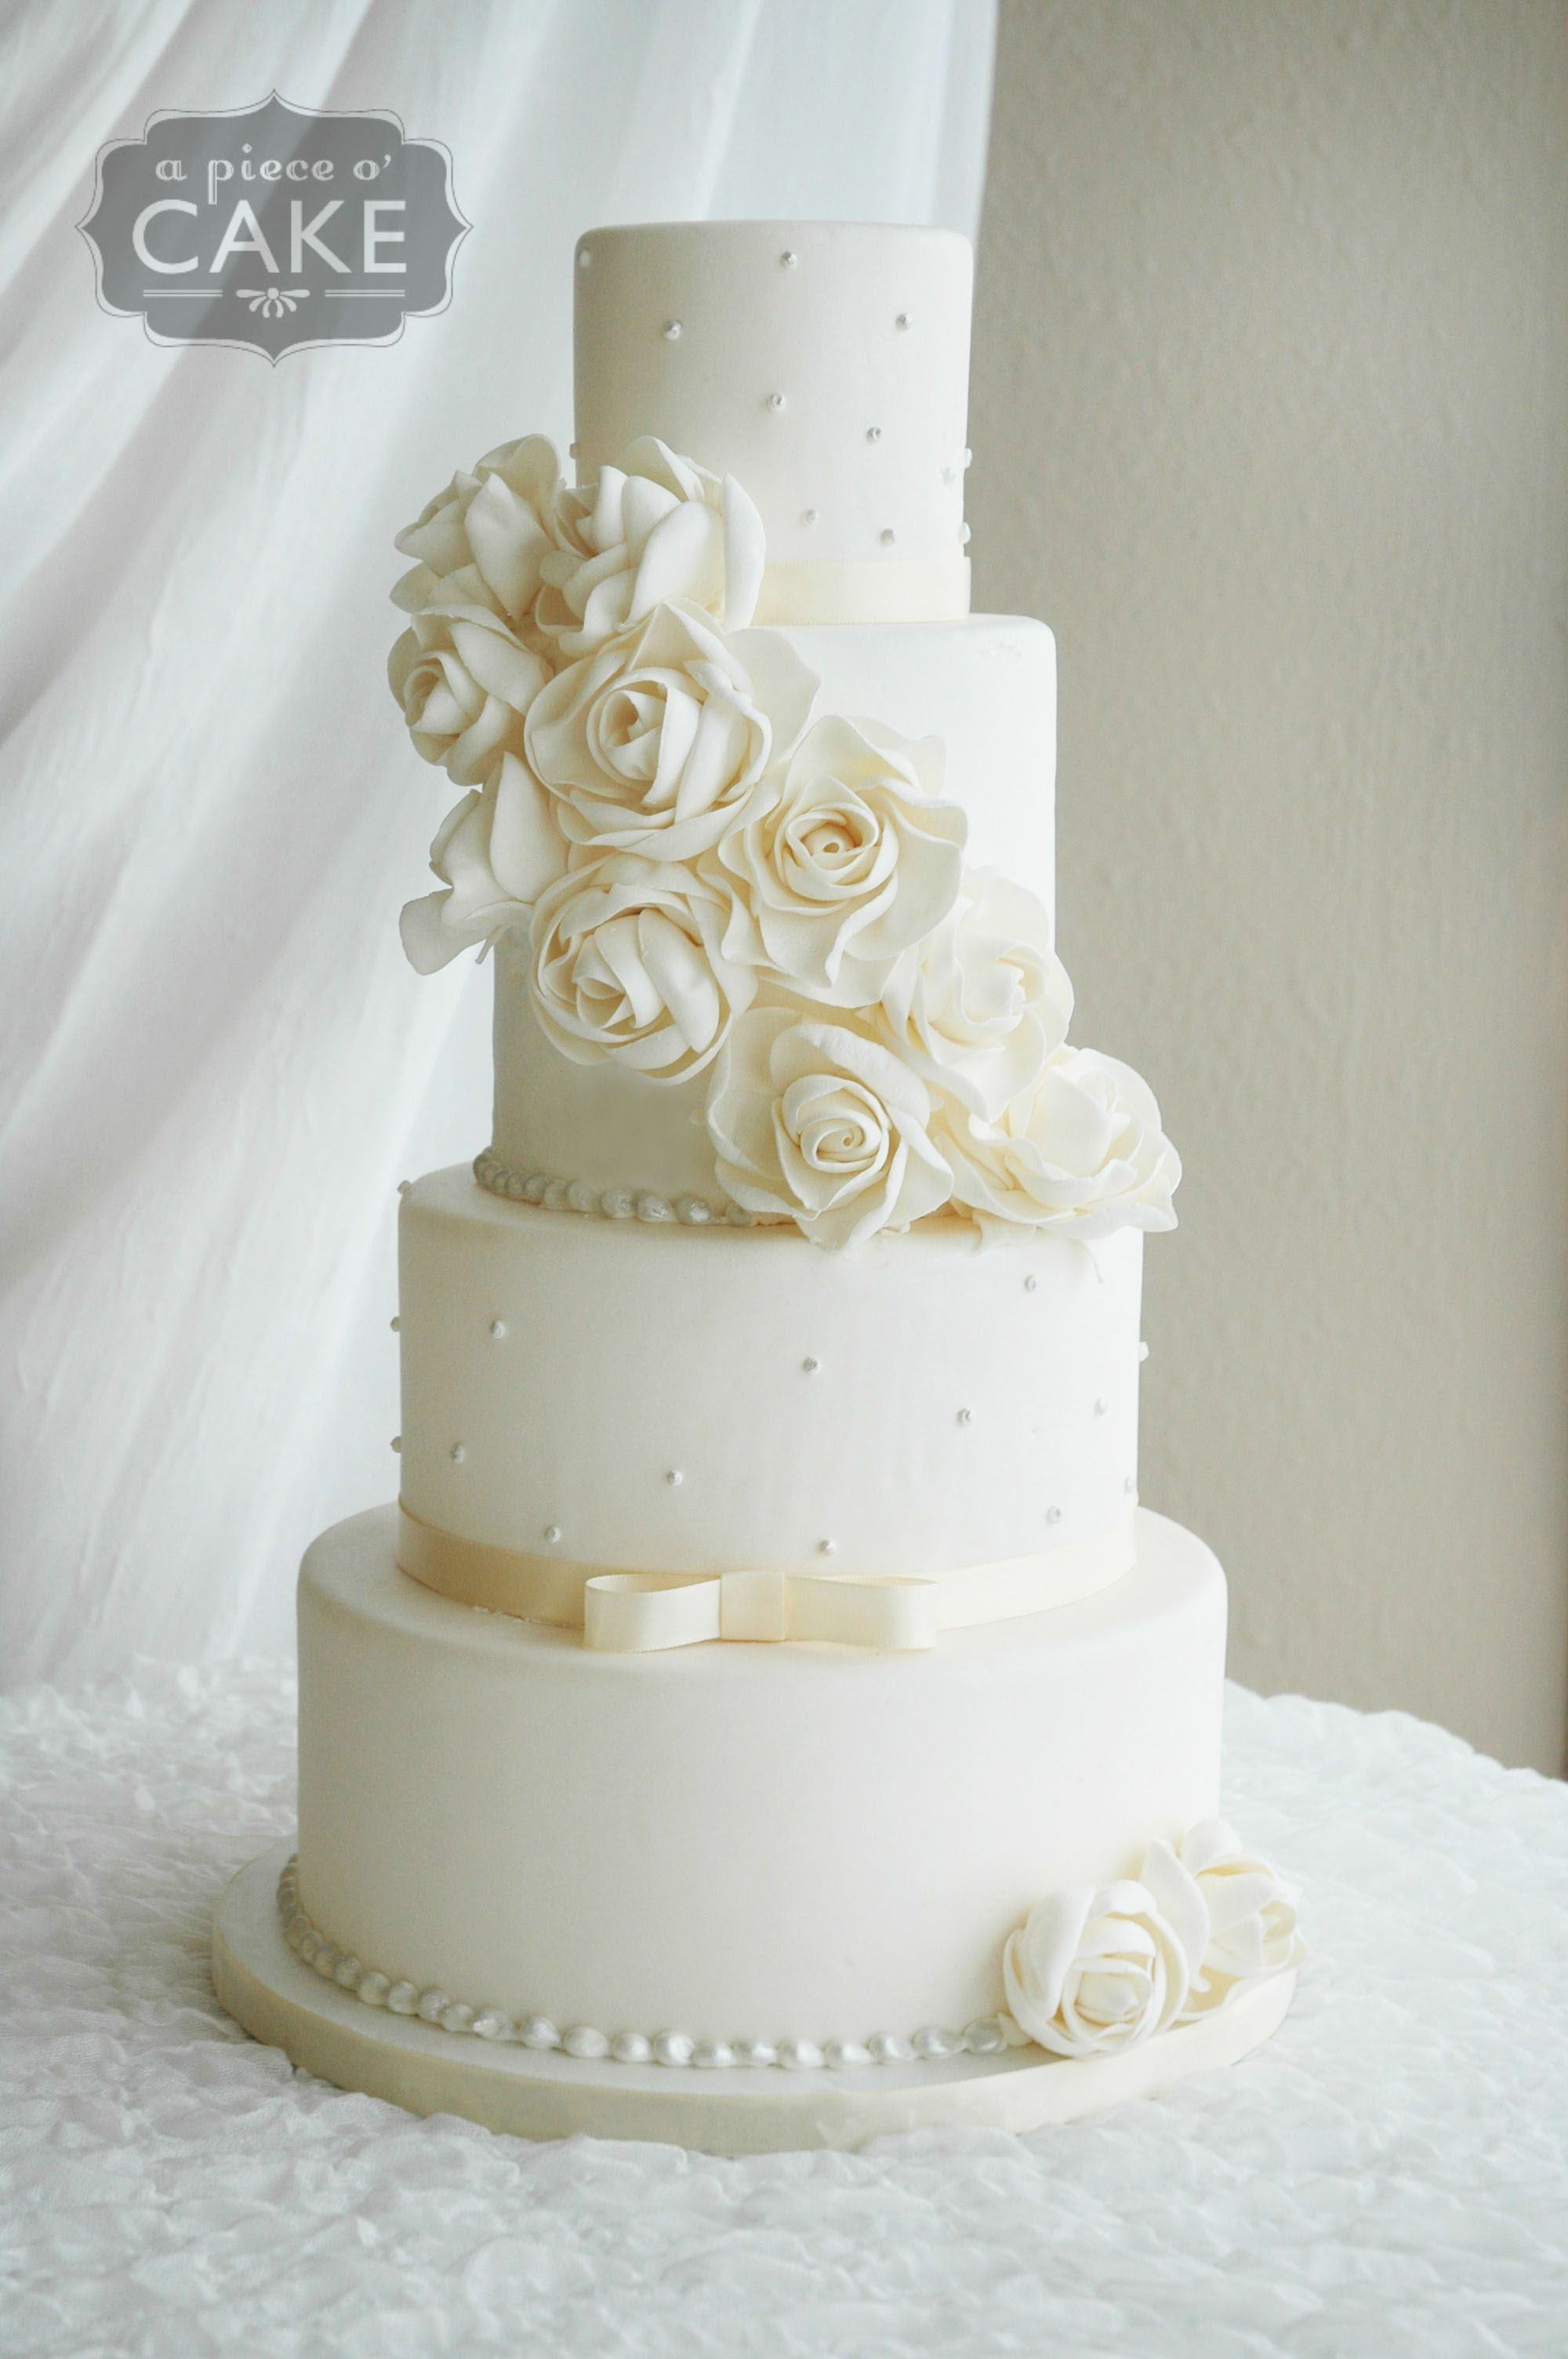 Pin by A Piece O\' Cake on Fondant Wedding Cakes | Pinterest ...